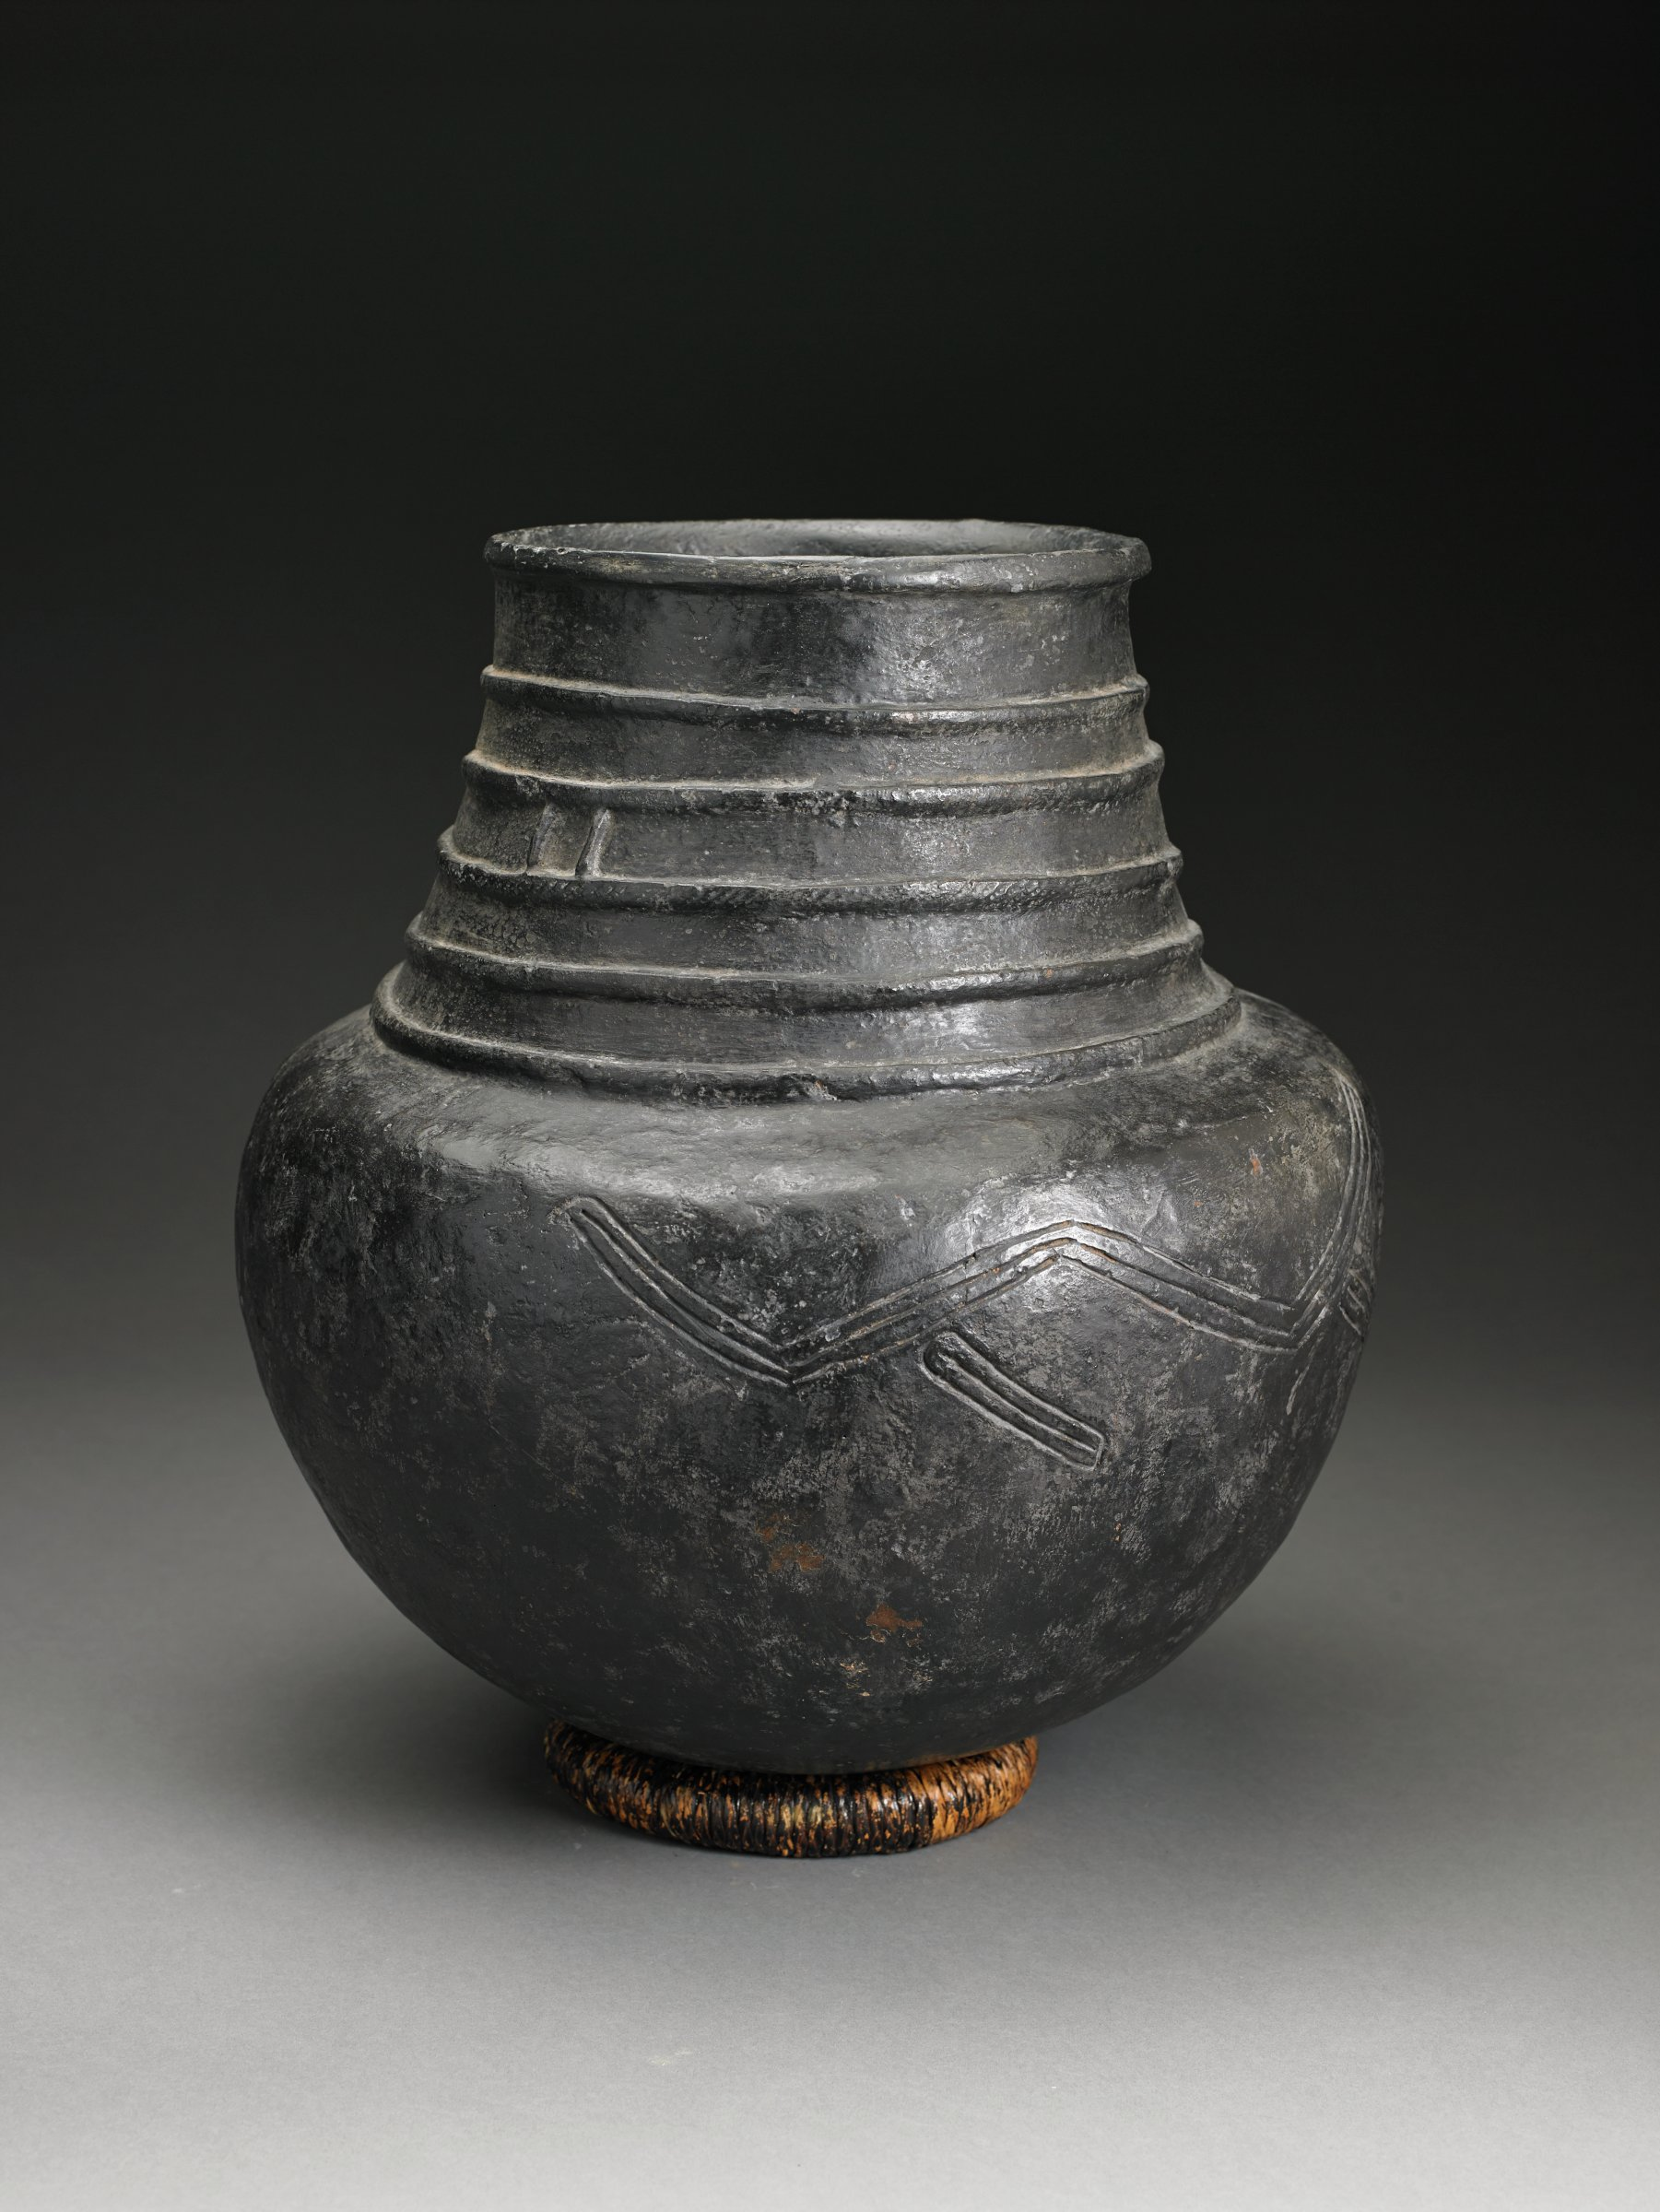 Dark brownish-black vessel has round bottom and narrower neck with parallel raised bands; body has incised horizontal abstract design.